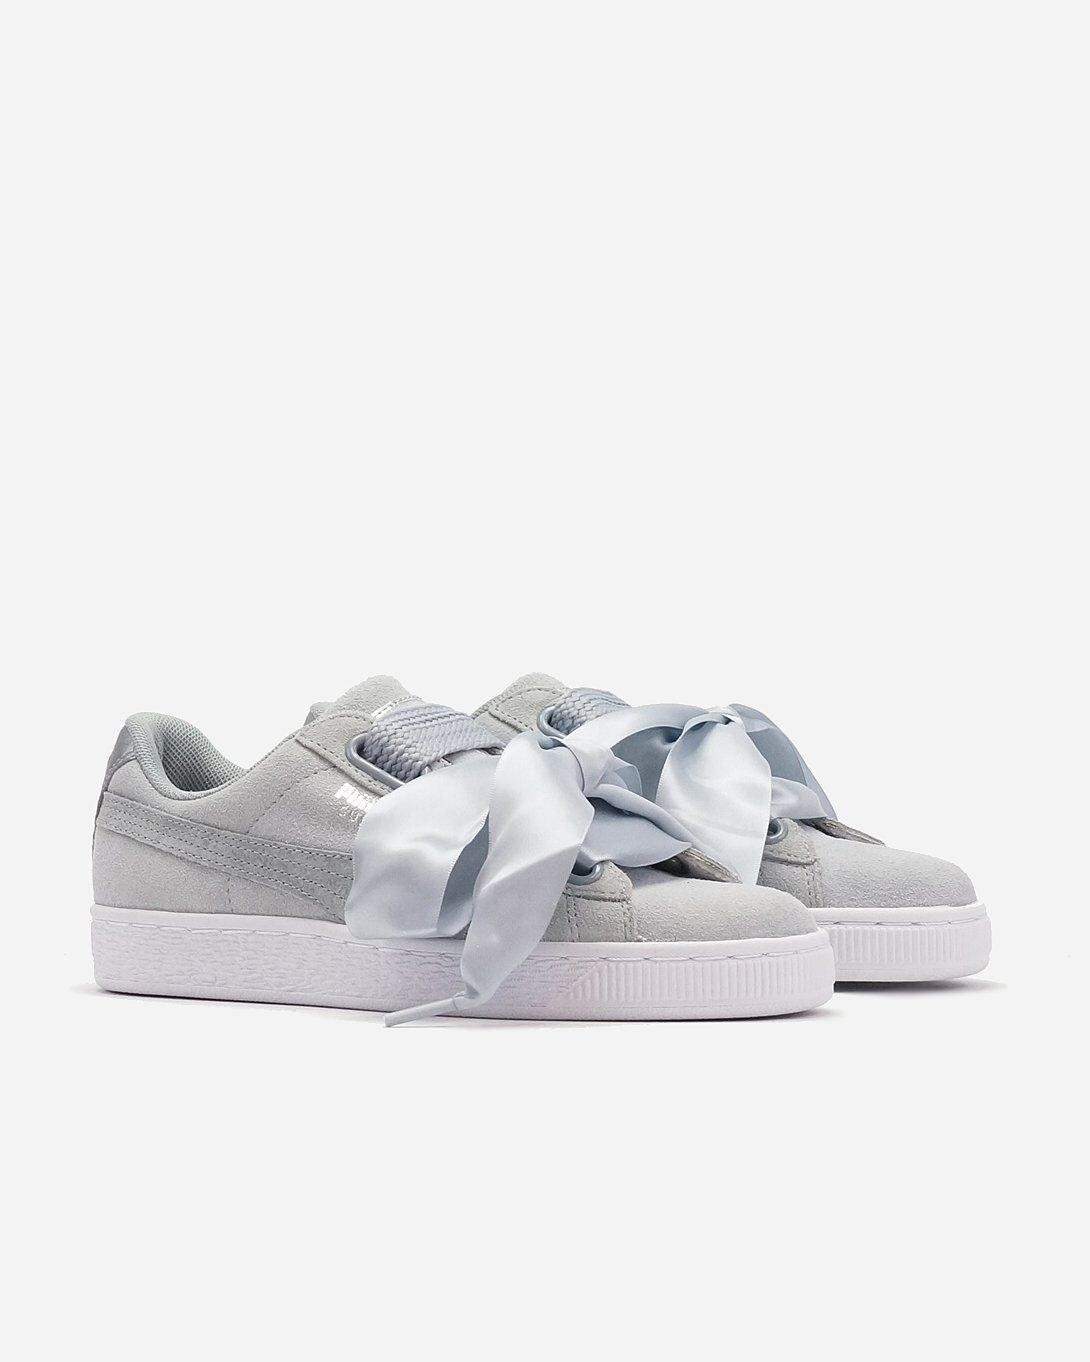 newest eeffb b0ad3 Puma Suede Heart Quarry Womens Sneaker 36408302 | Sole ...